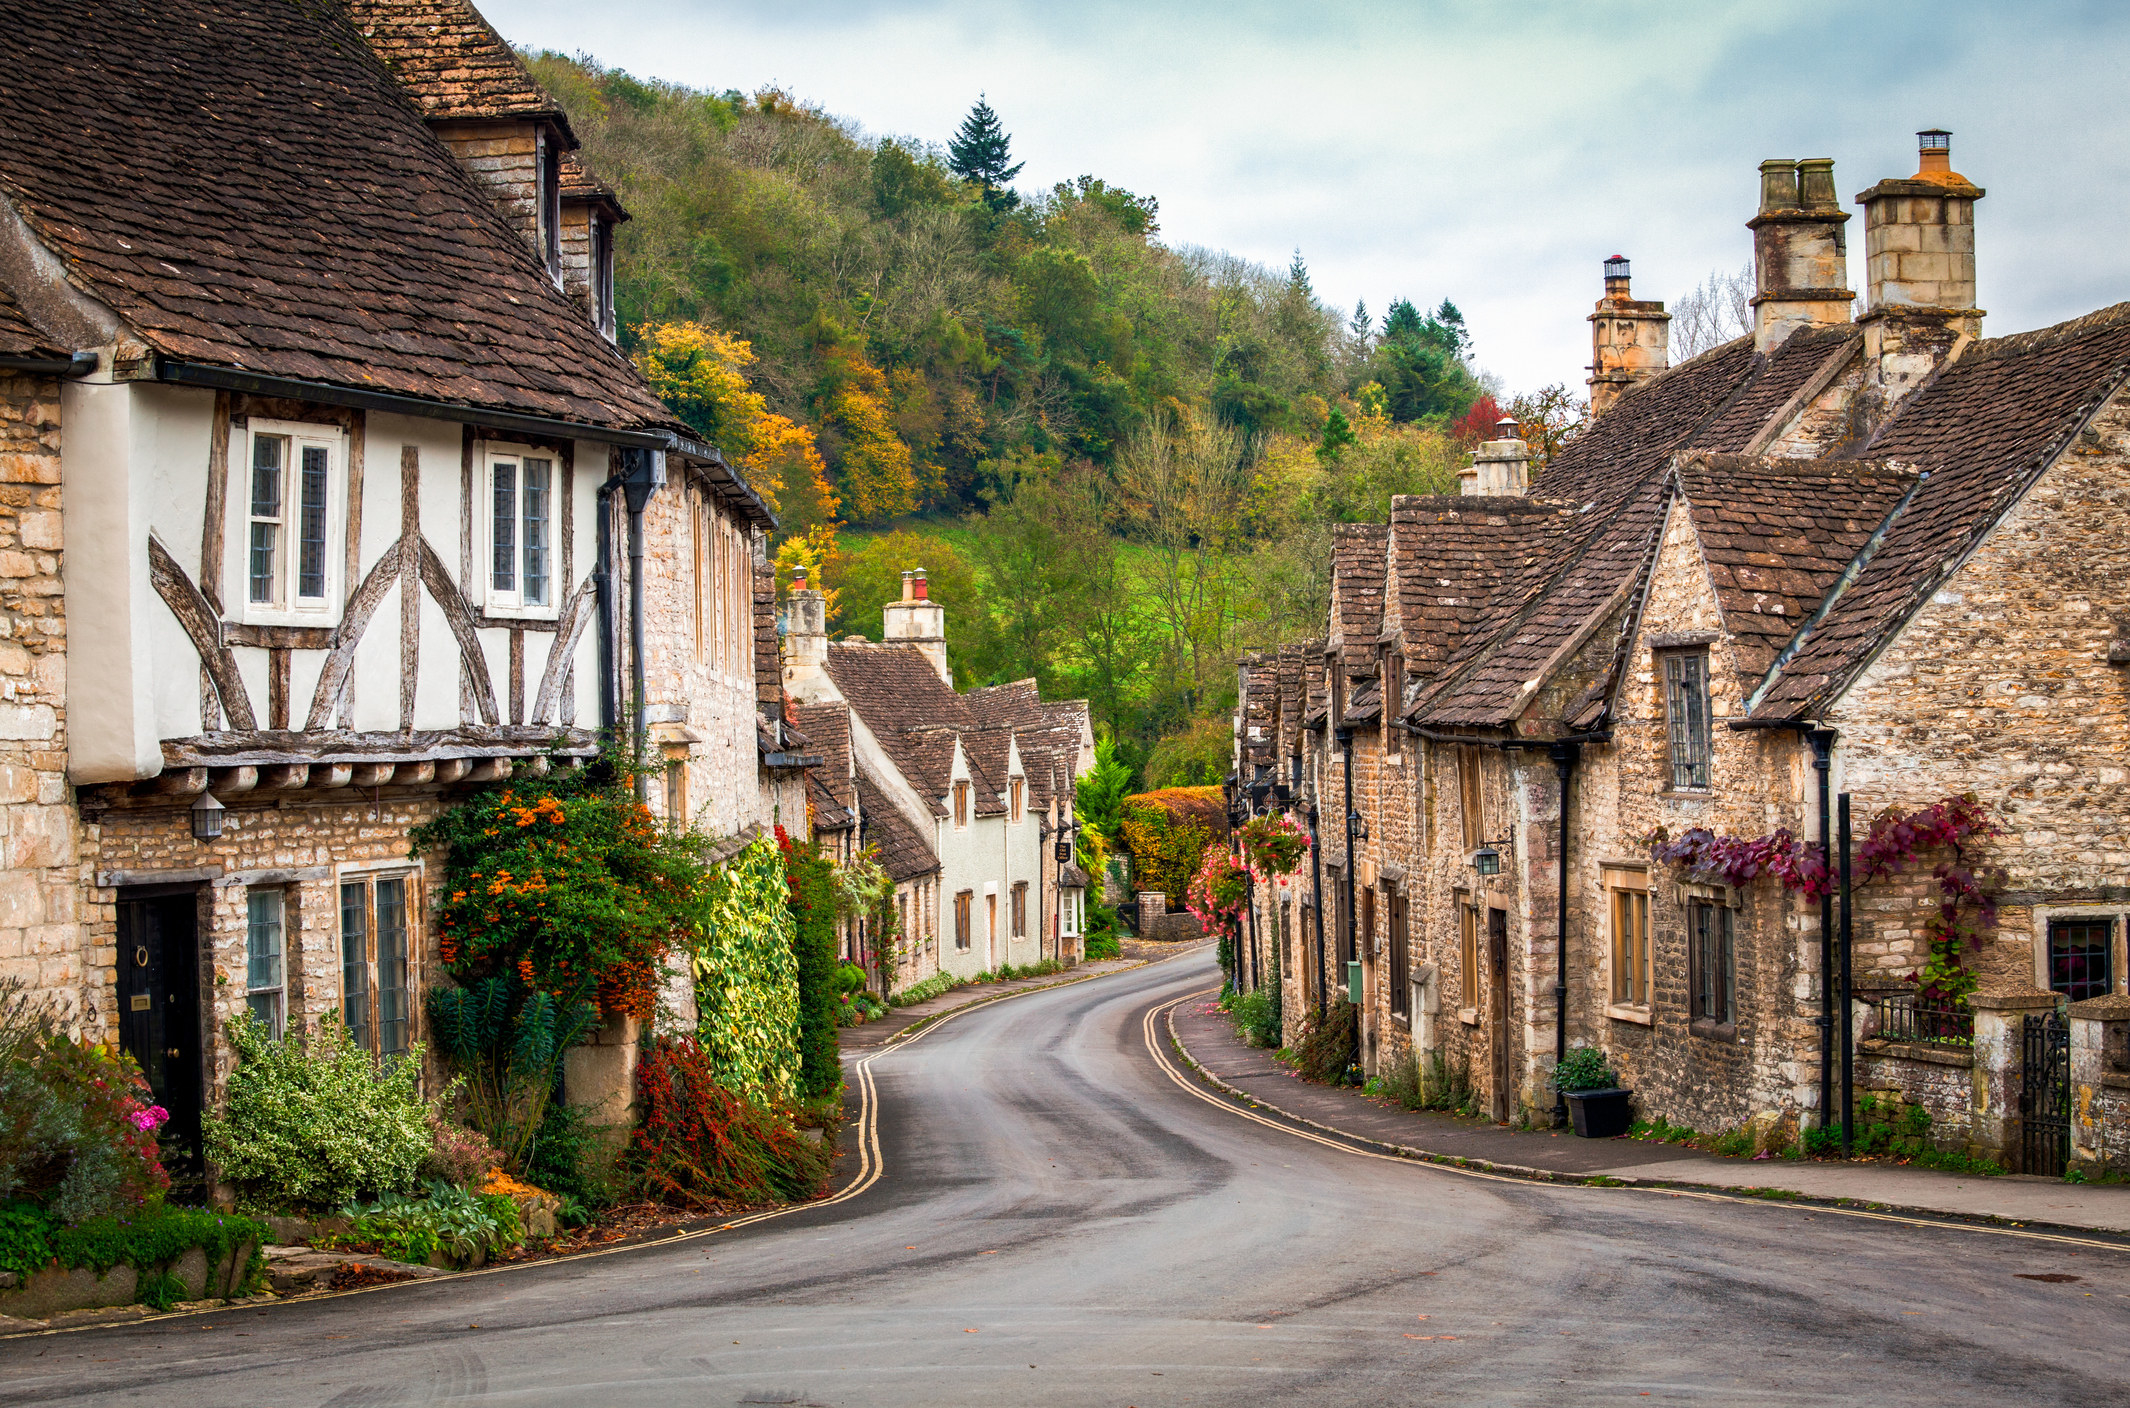 A town in the English countryside.